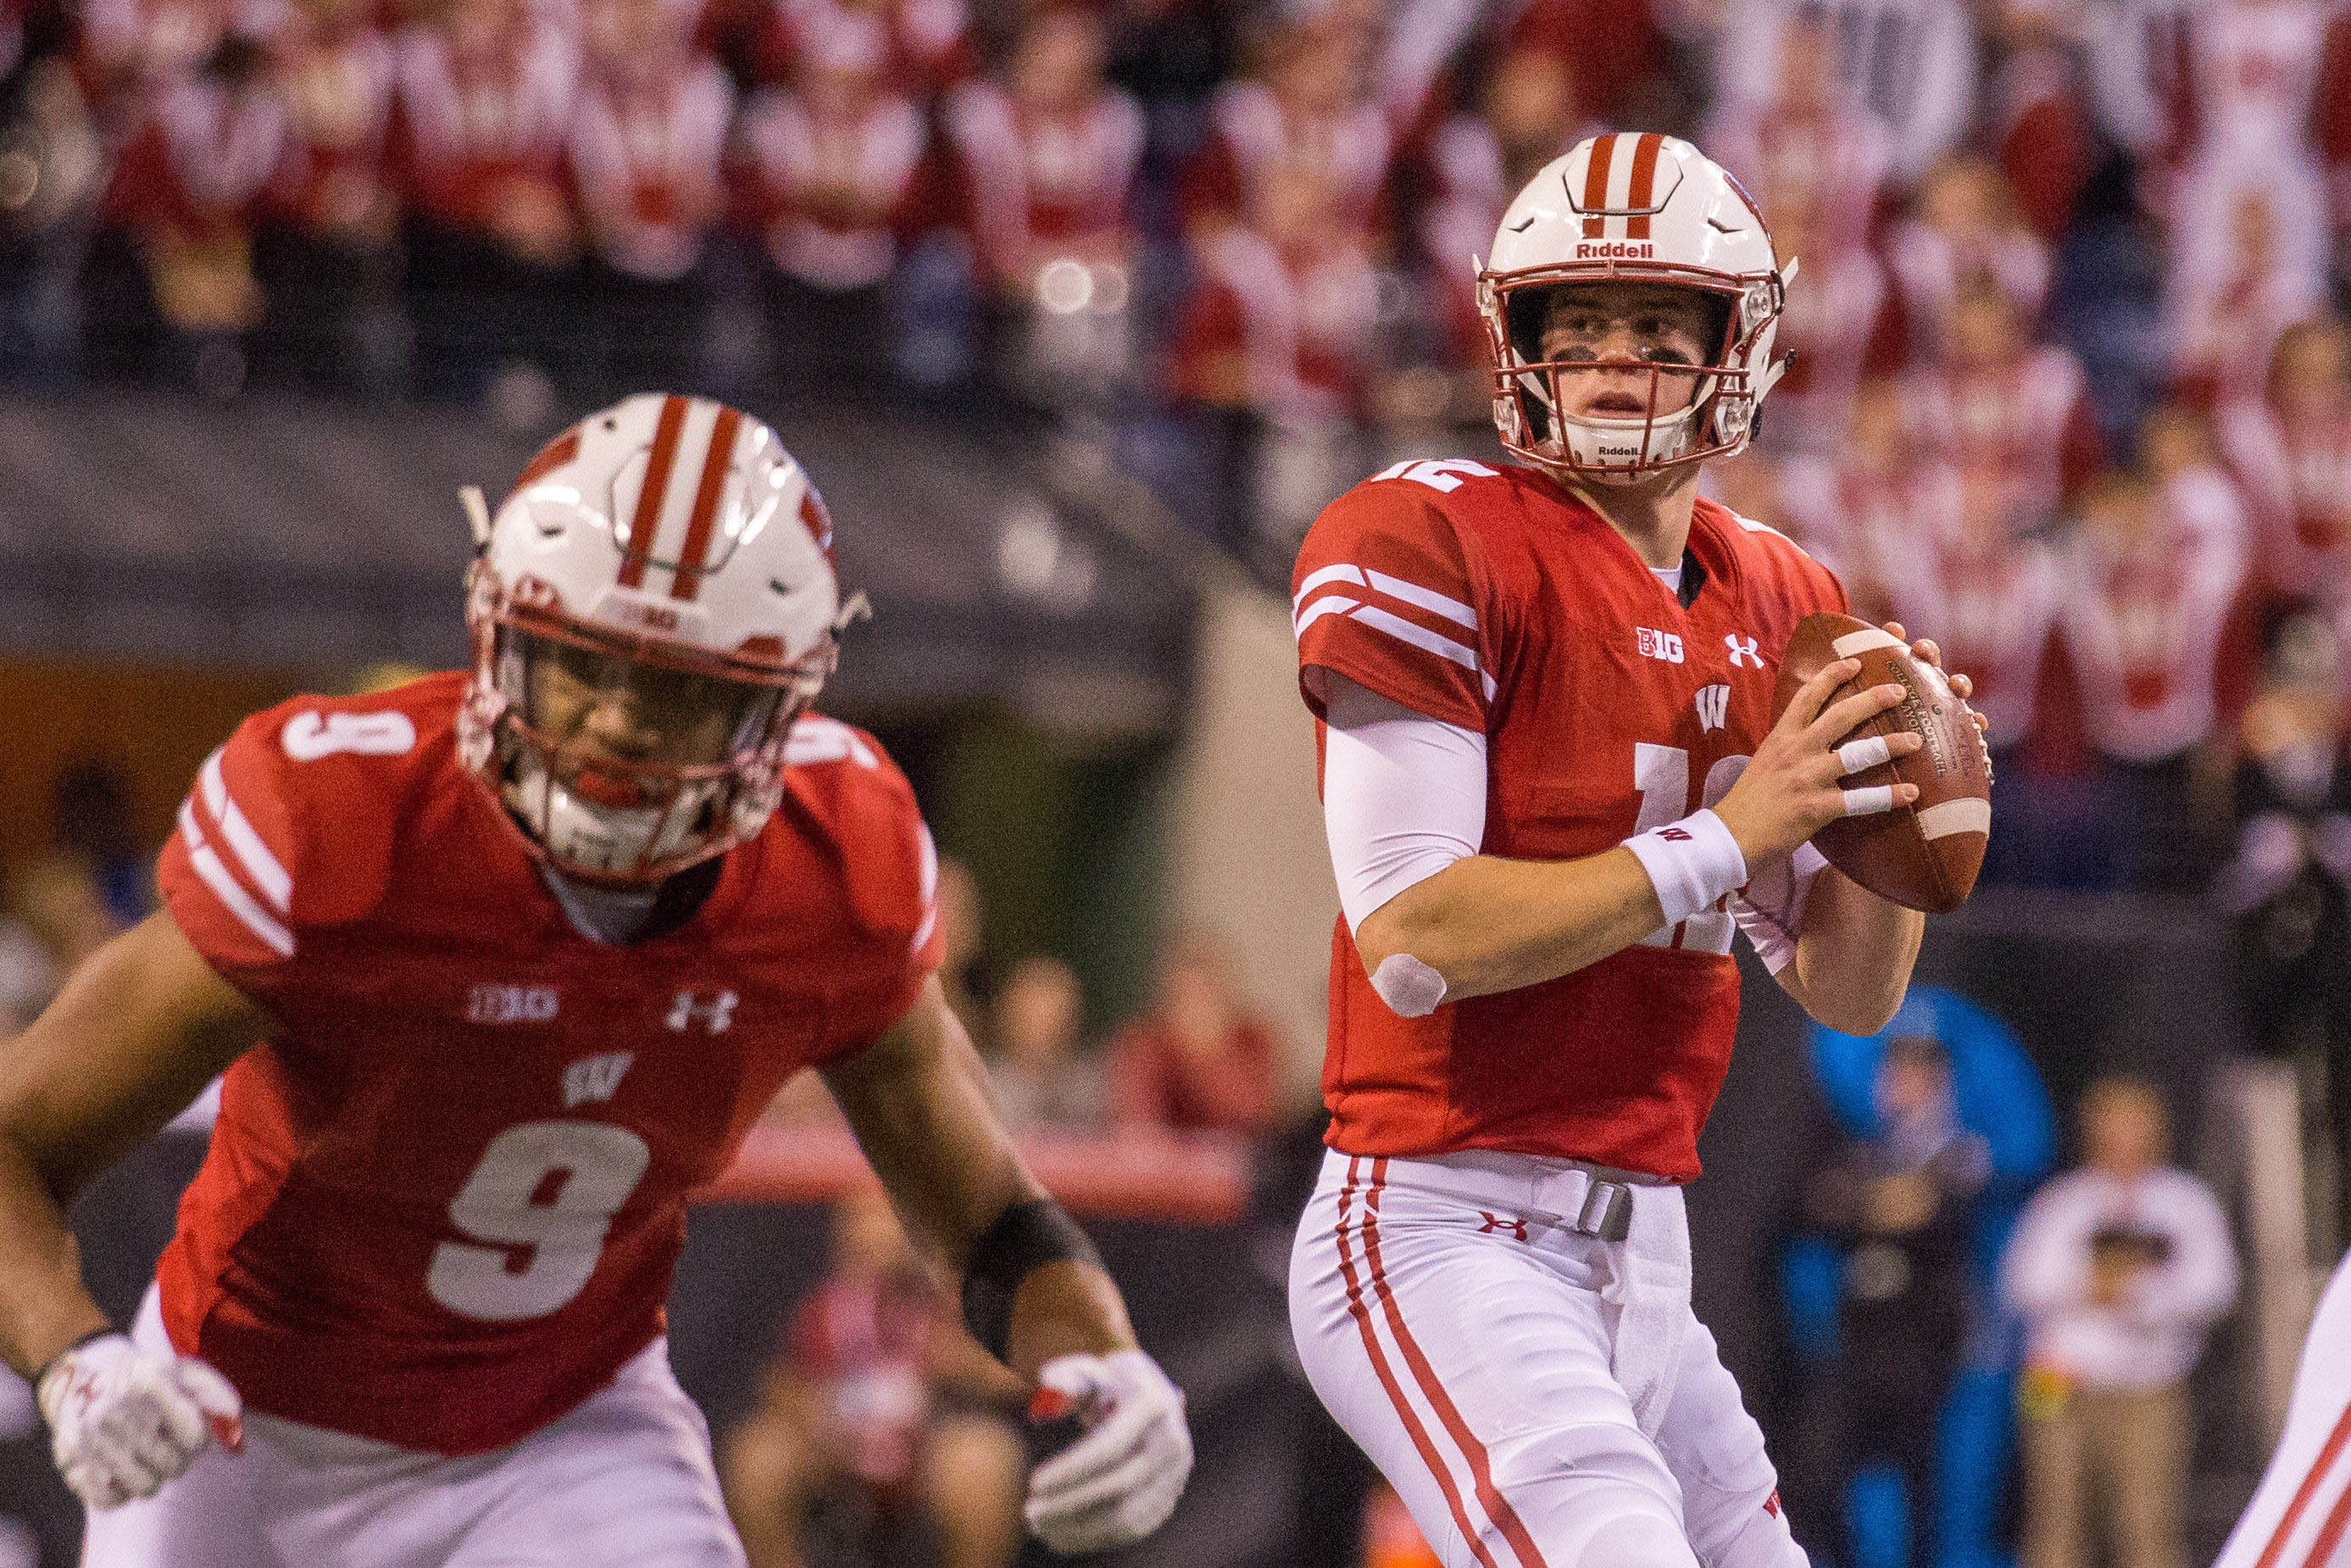 Dec 2, 2017; Indianapolis, IN, USA; Wisconsin Badgers quarterback Alex Hornibrook (12) drops back to pass the ball in the first half against the Ohio State Buckeyes in the Big Ten championship game at Lucas Oil Stadium. Mandatory Credit: Trevor Ruszkowski-USA TODAY Sports